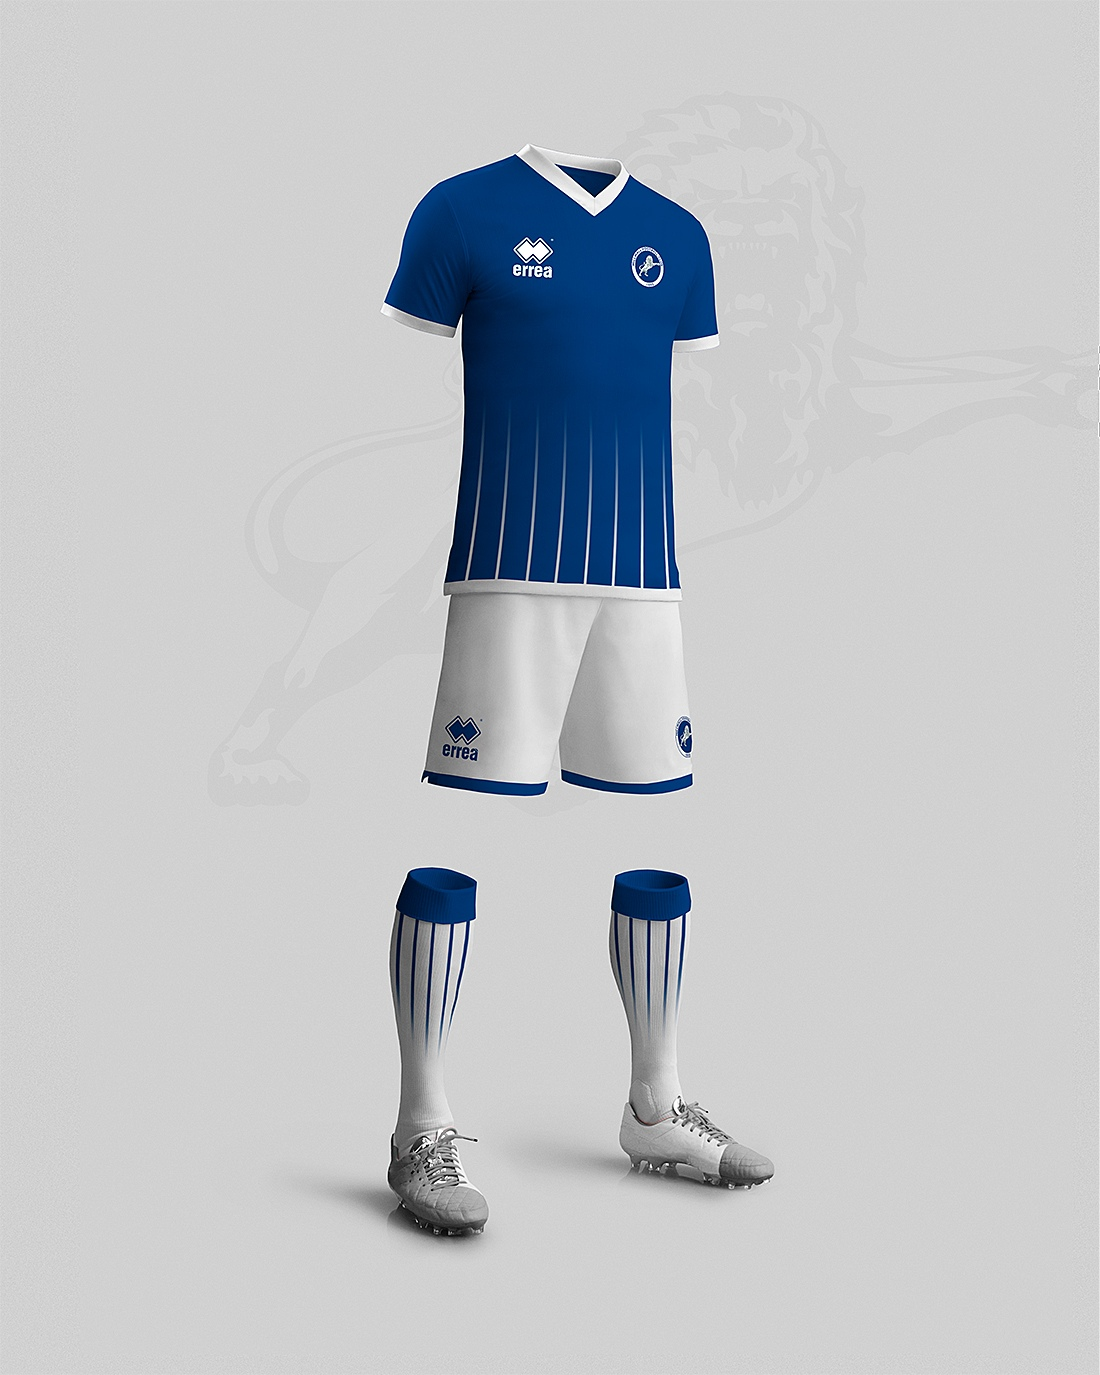 Stroje piłkarskie projekt Millwall home kit design